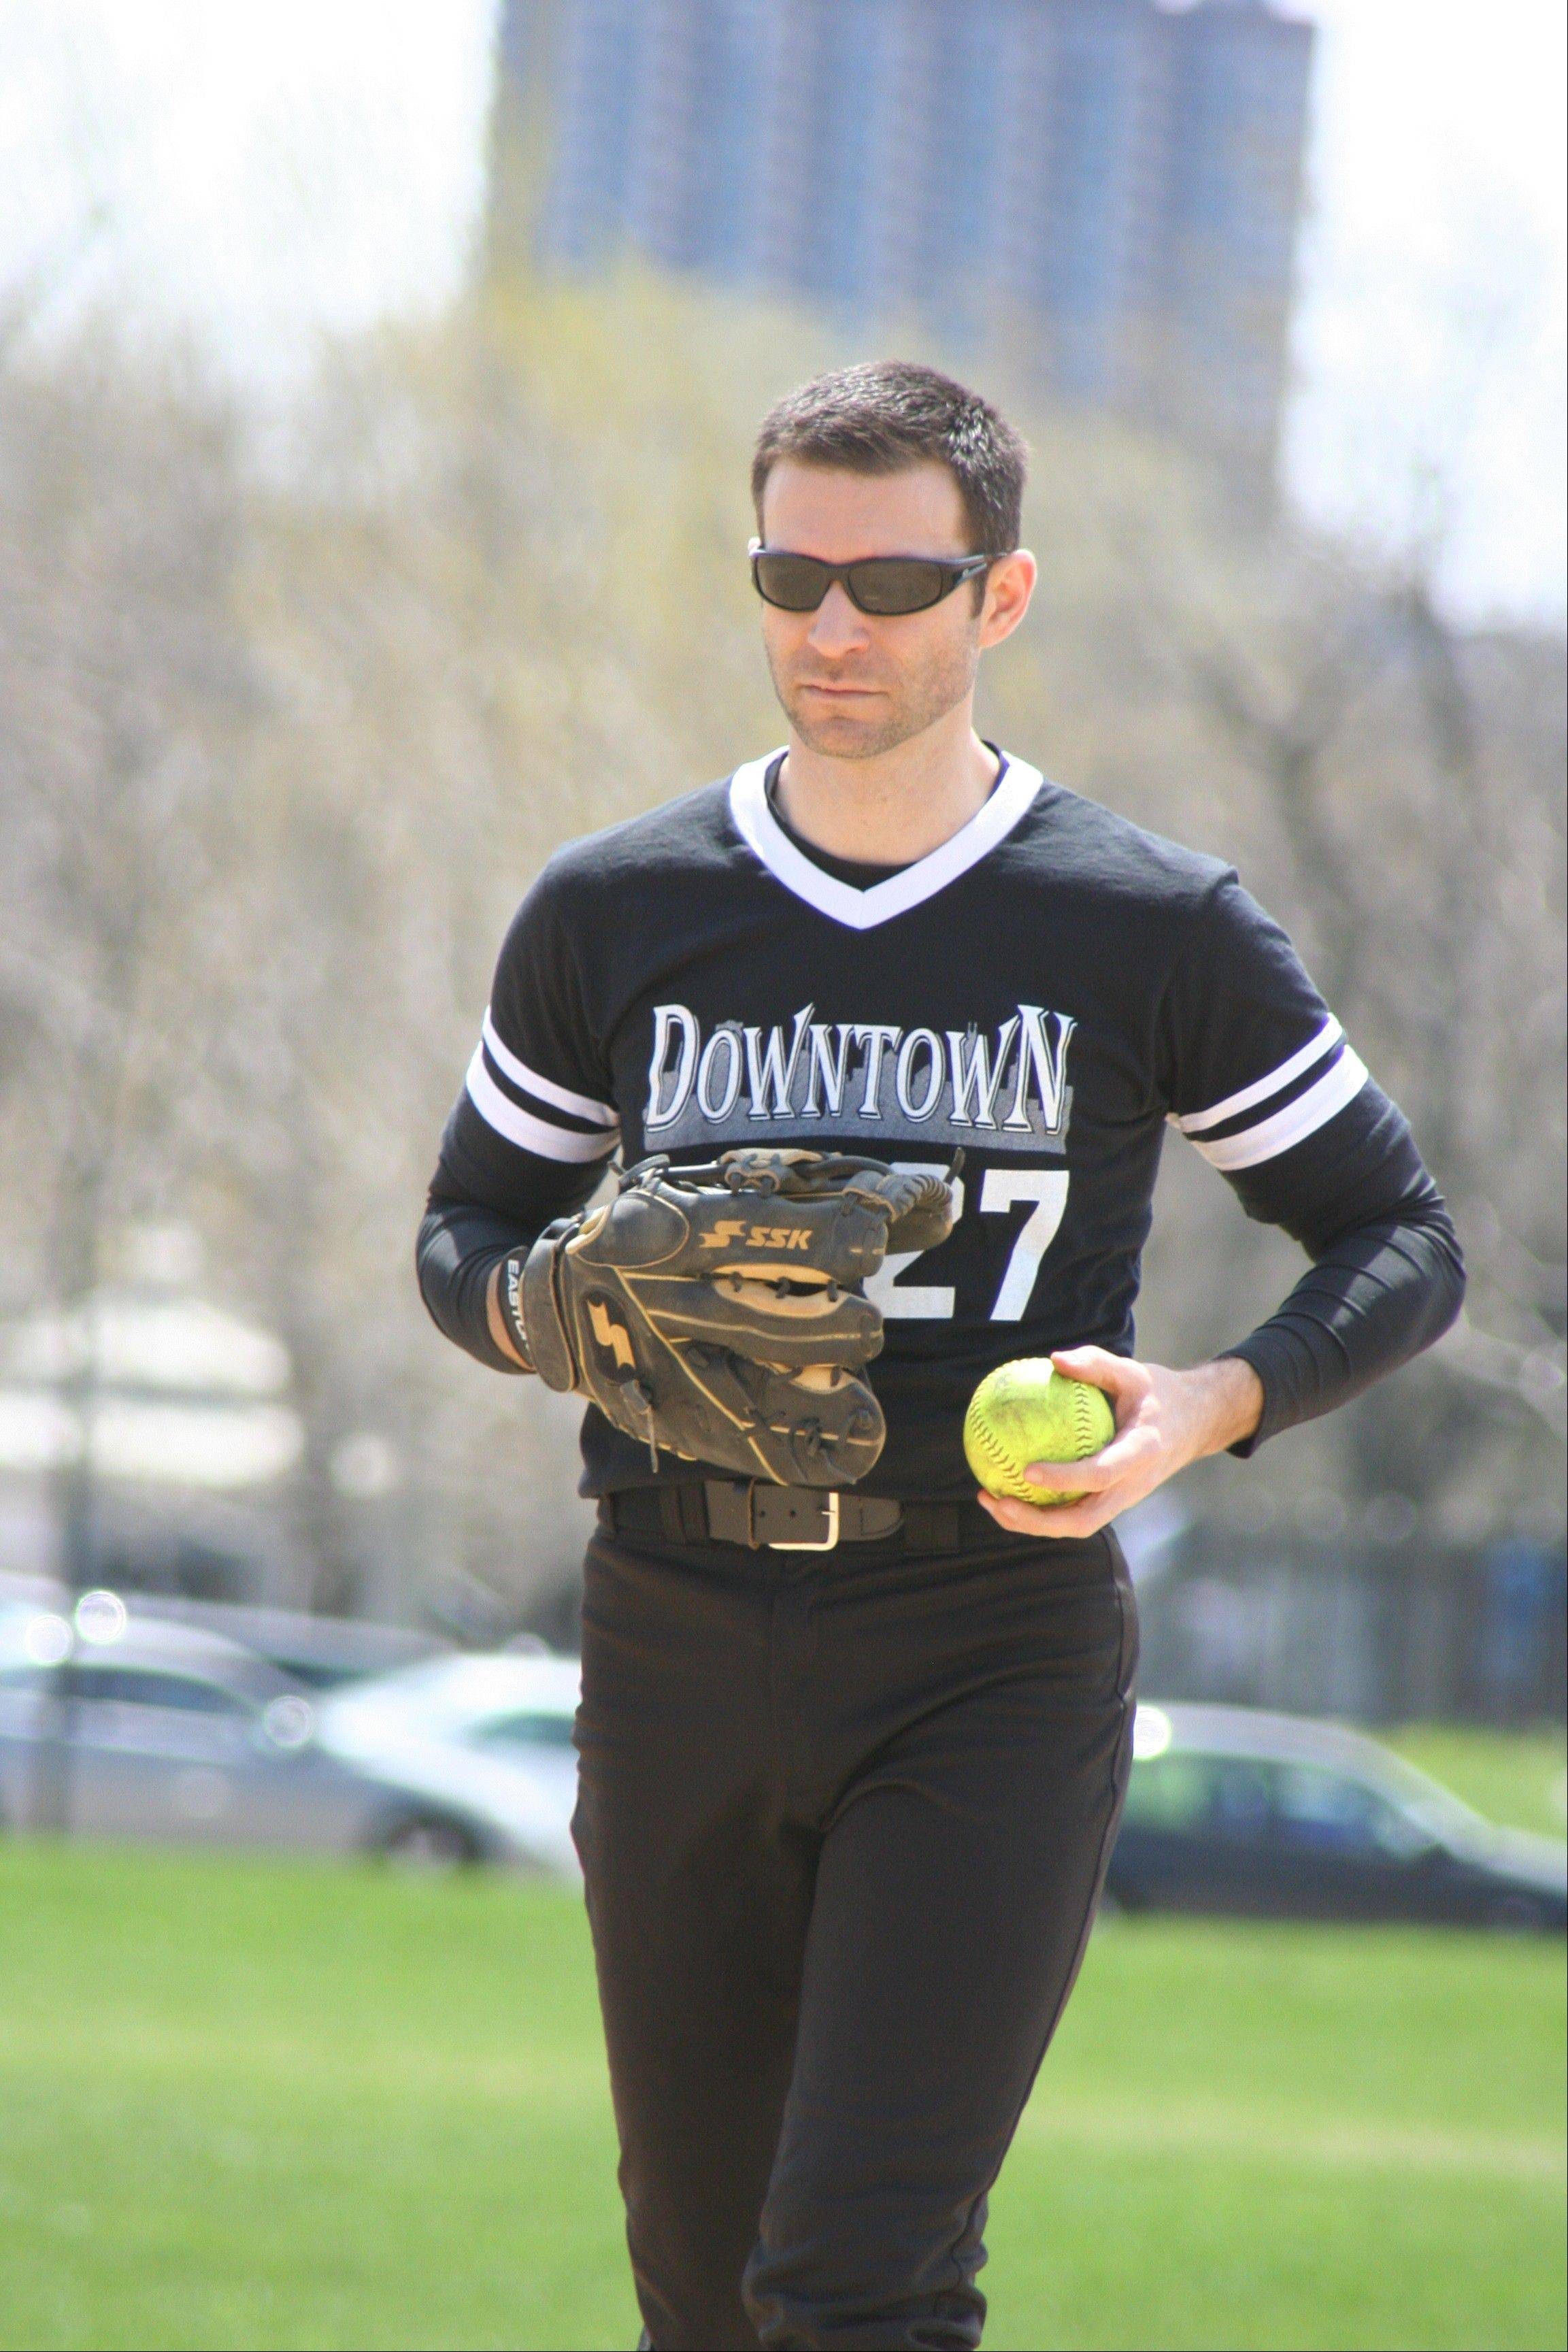 Aaron Brost, formerly of Naperville, pitches for the Downtown Bar & Lounge team in the CMSA B-Division.